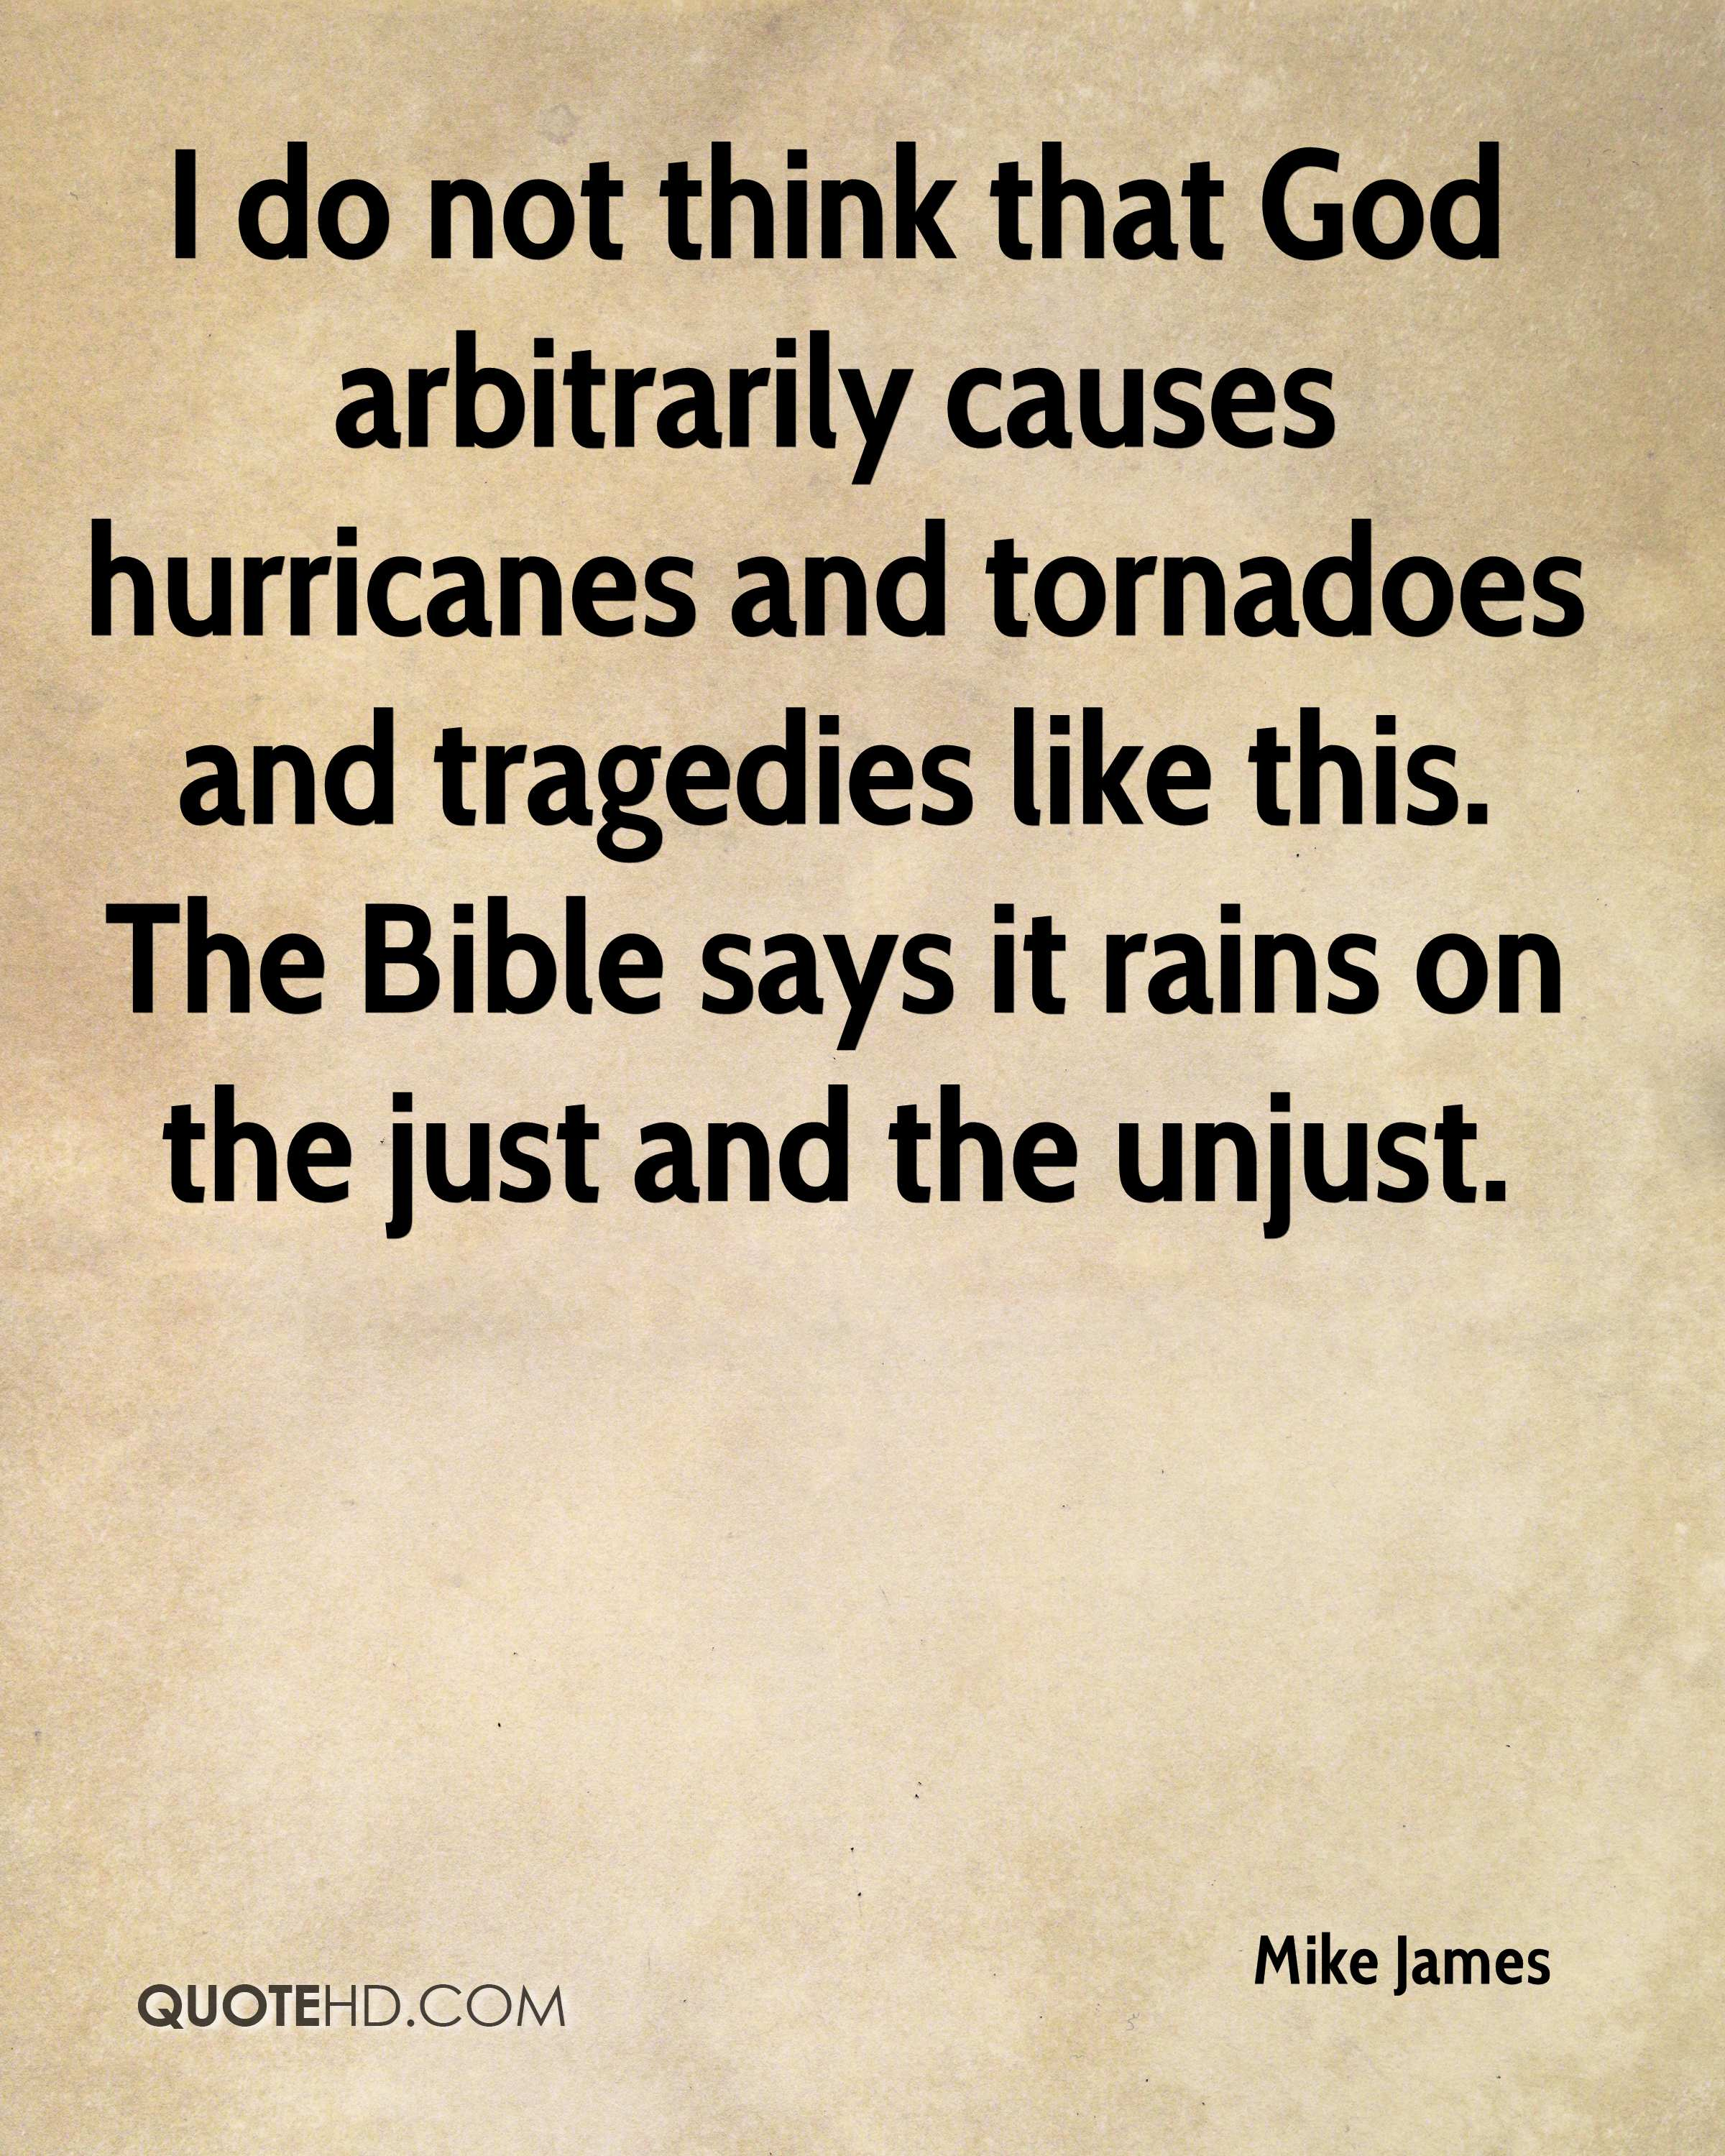 I do not think that God arbitrarily causes hurricanes and tornadoes and tragedies like this. The Bible says it rains on the just and the unjust.